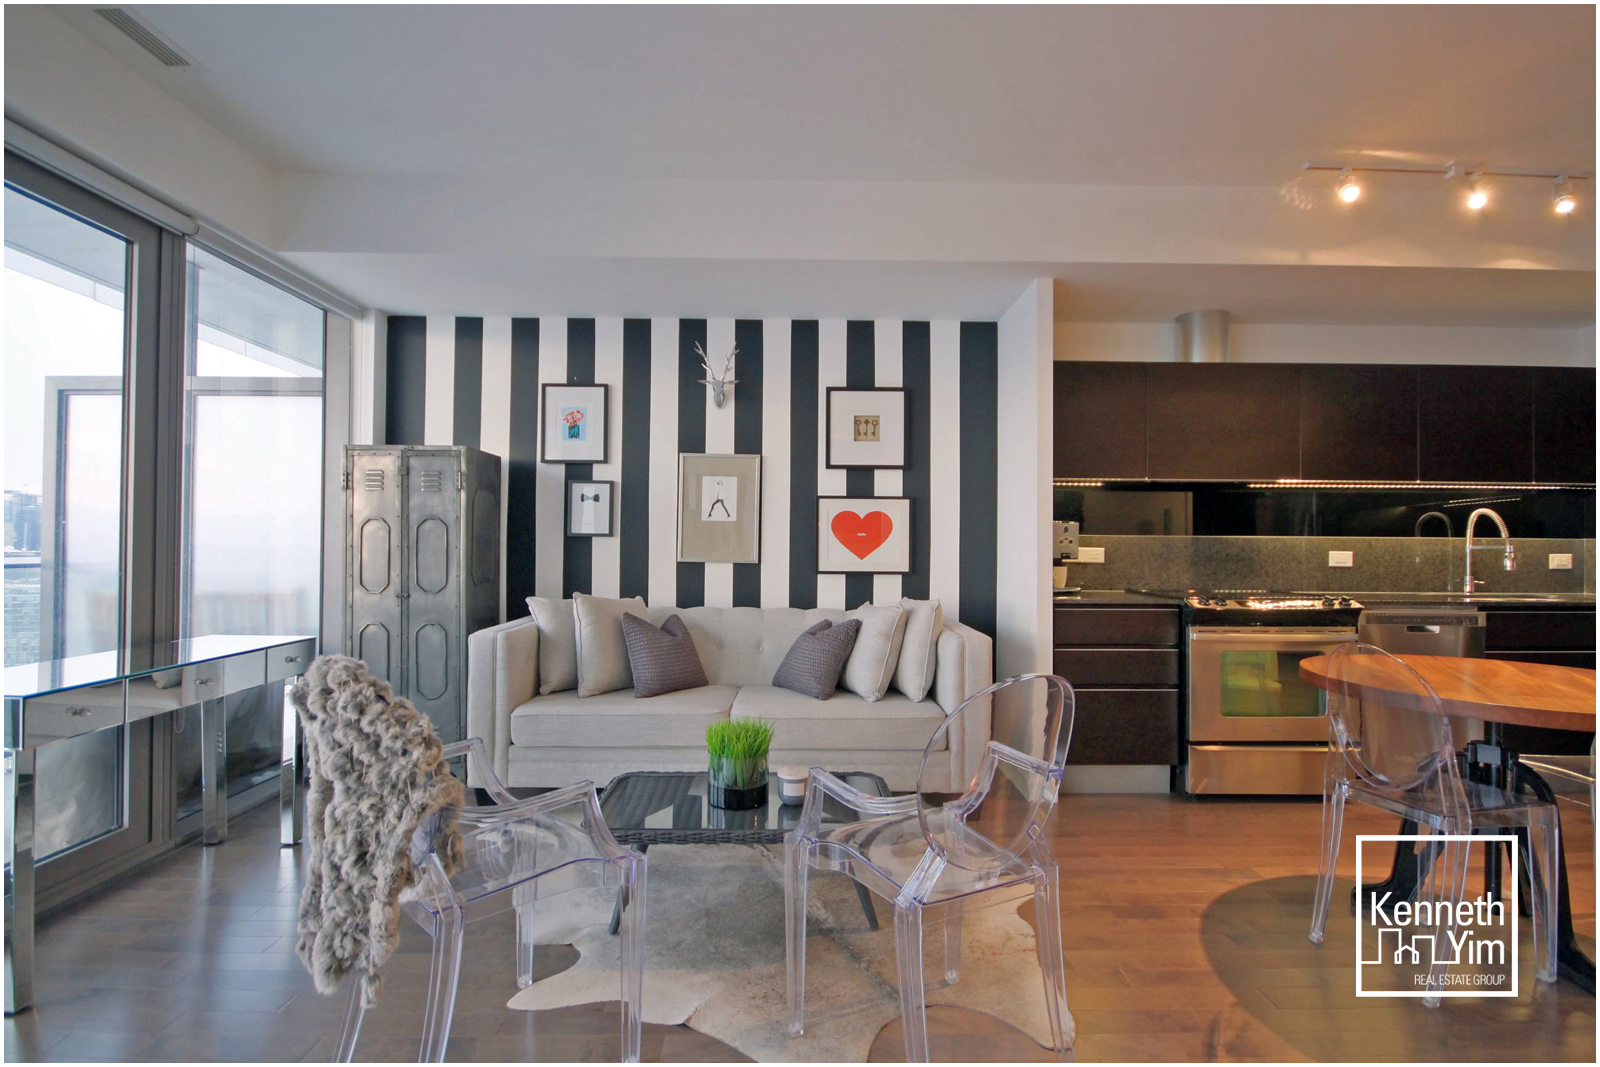 02 - Living and Kitchen.jpg